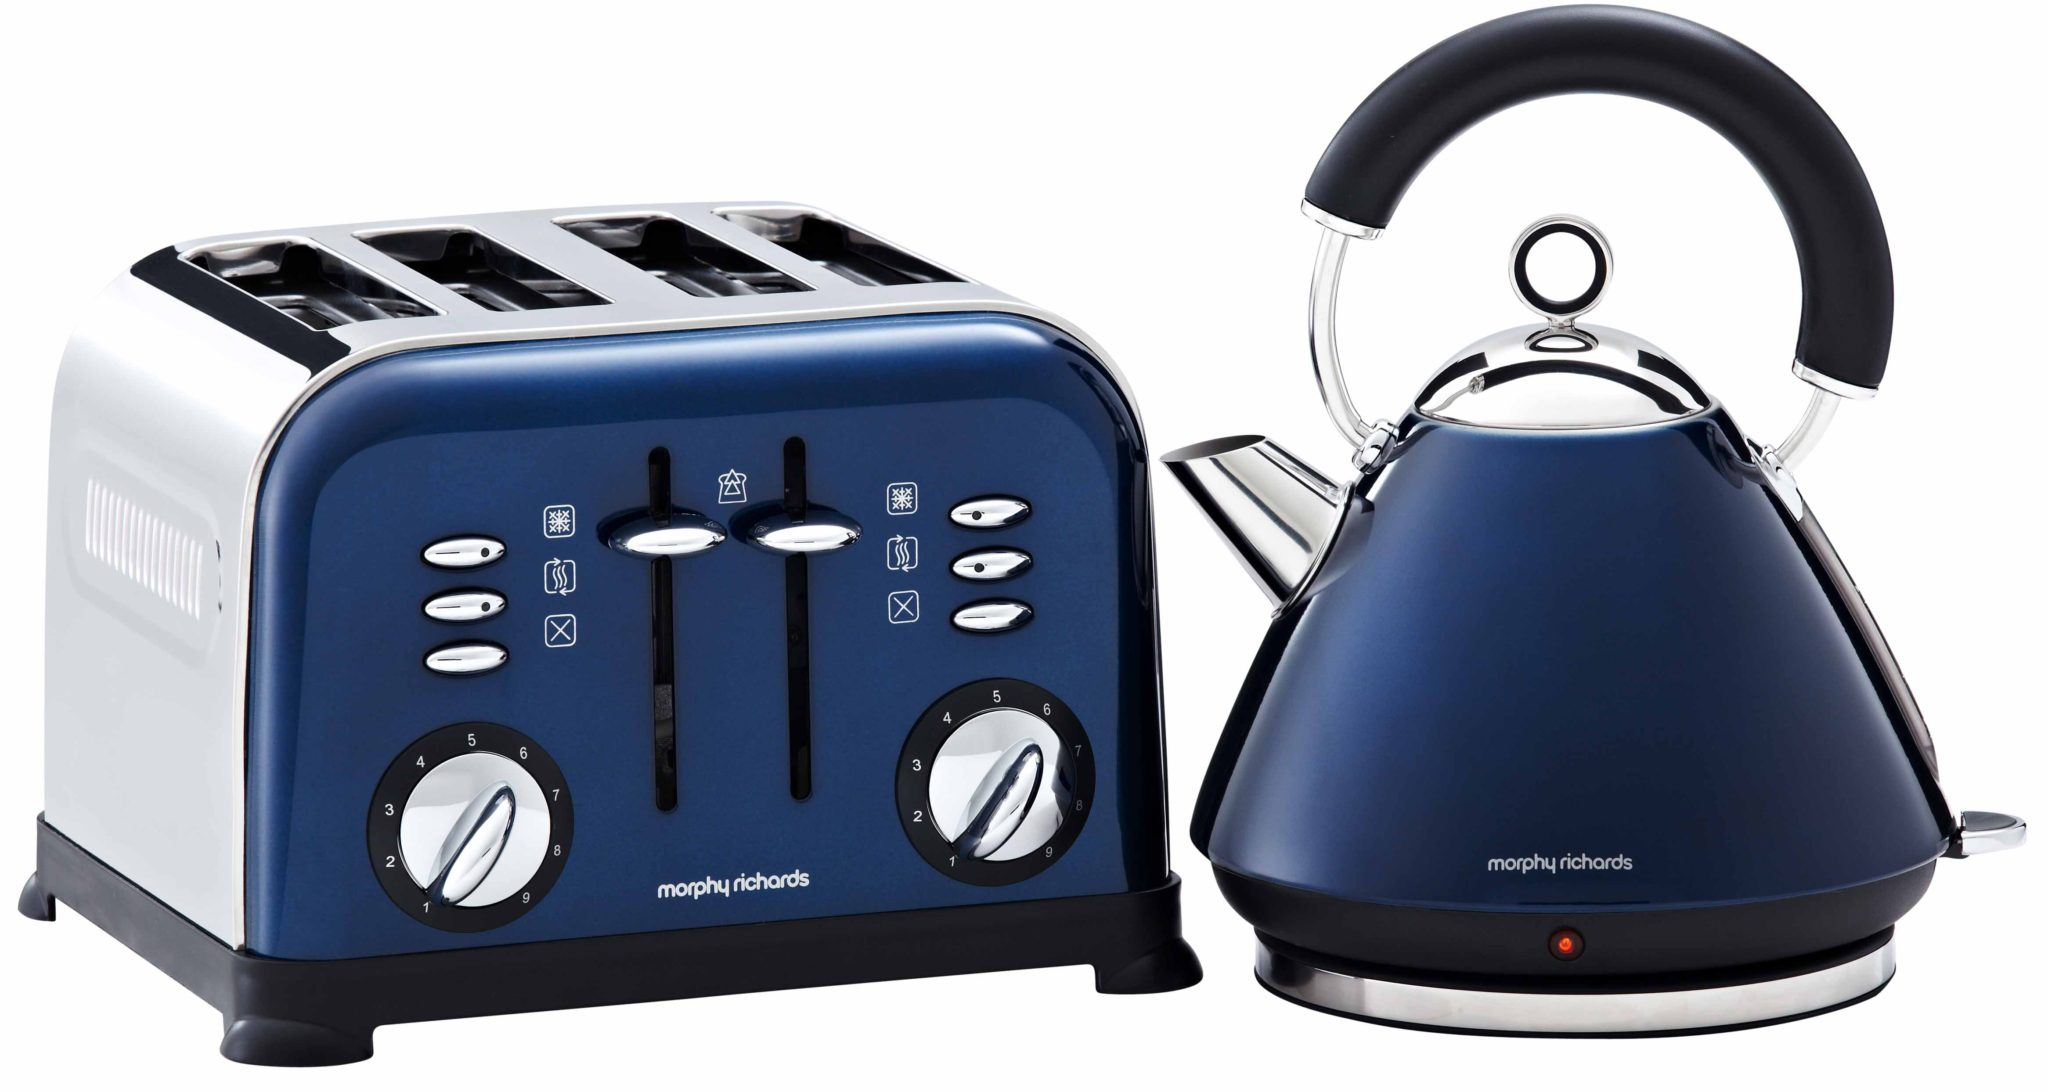 Kitchen Aide Toaster Oven The latest colourful kitchen appliances - The Interiors Addict